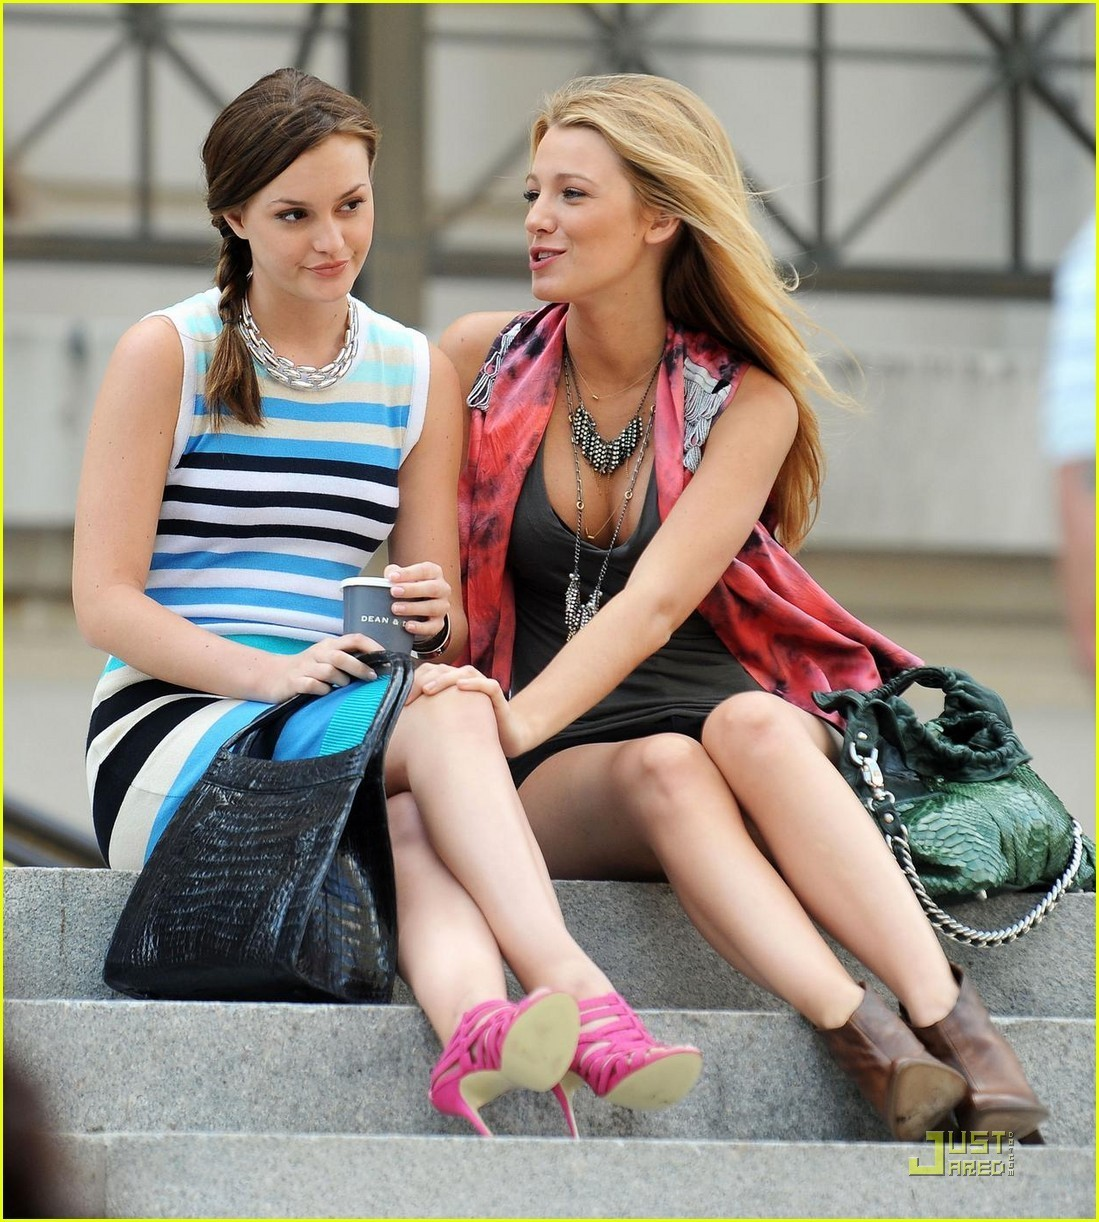 Blake Lively and Leighton